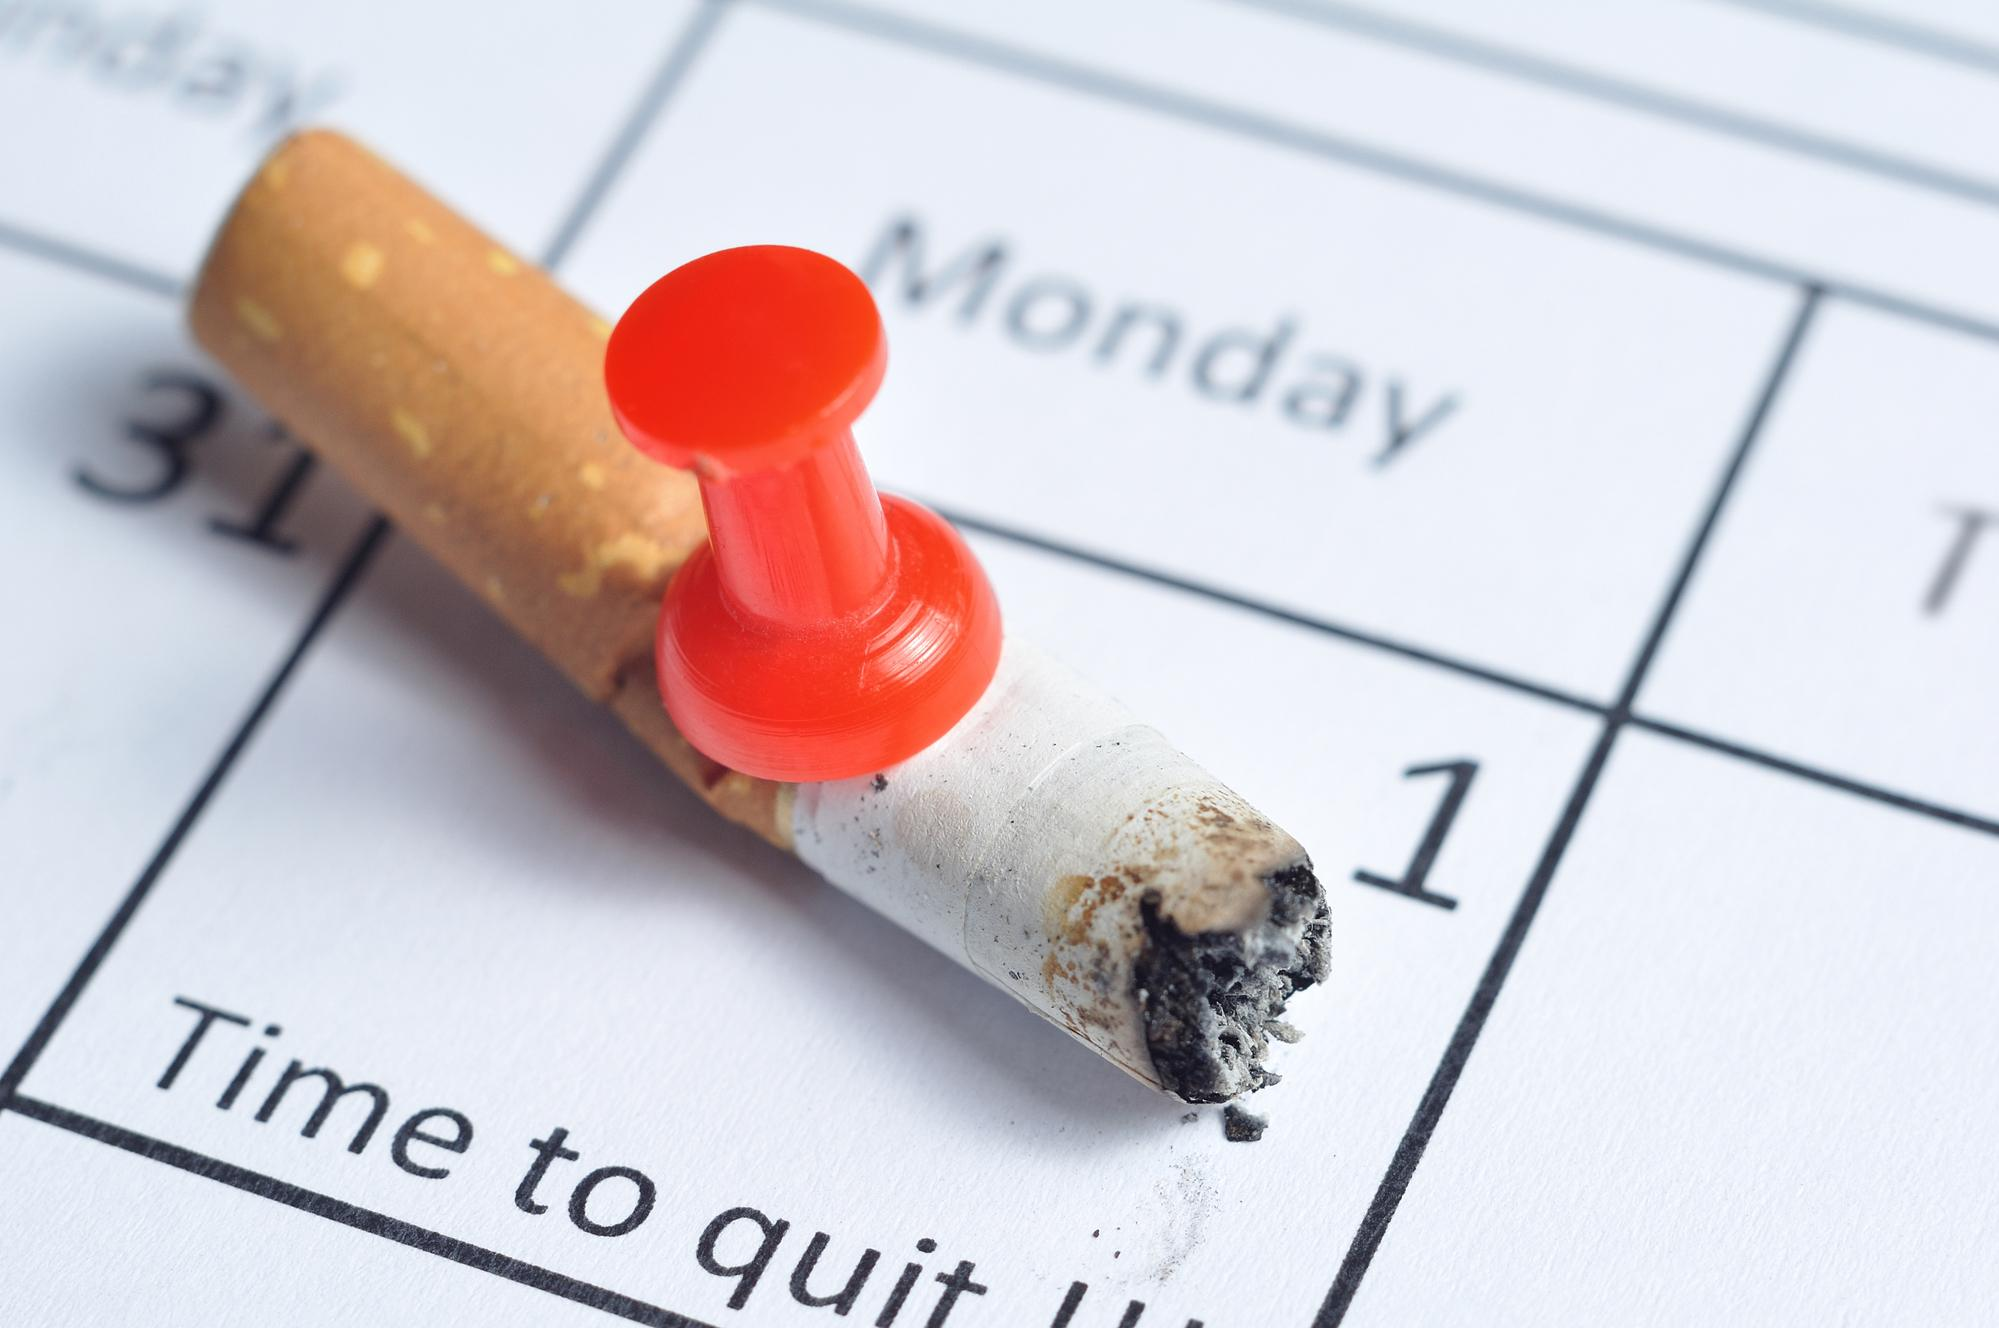 13 tips to quit smoking